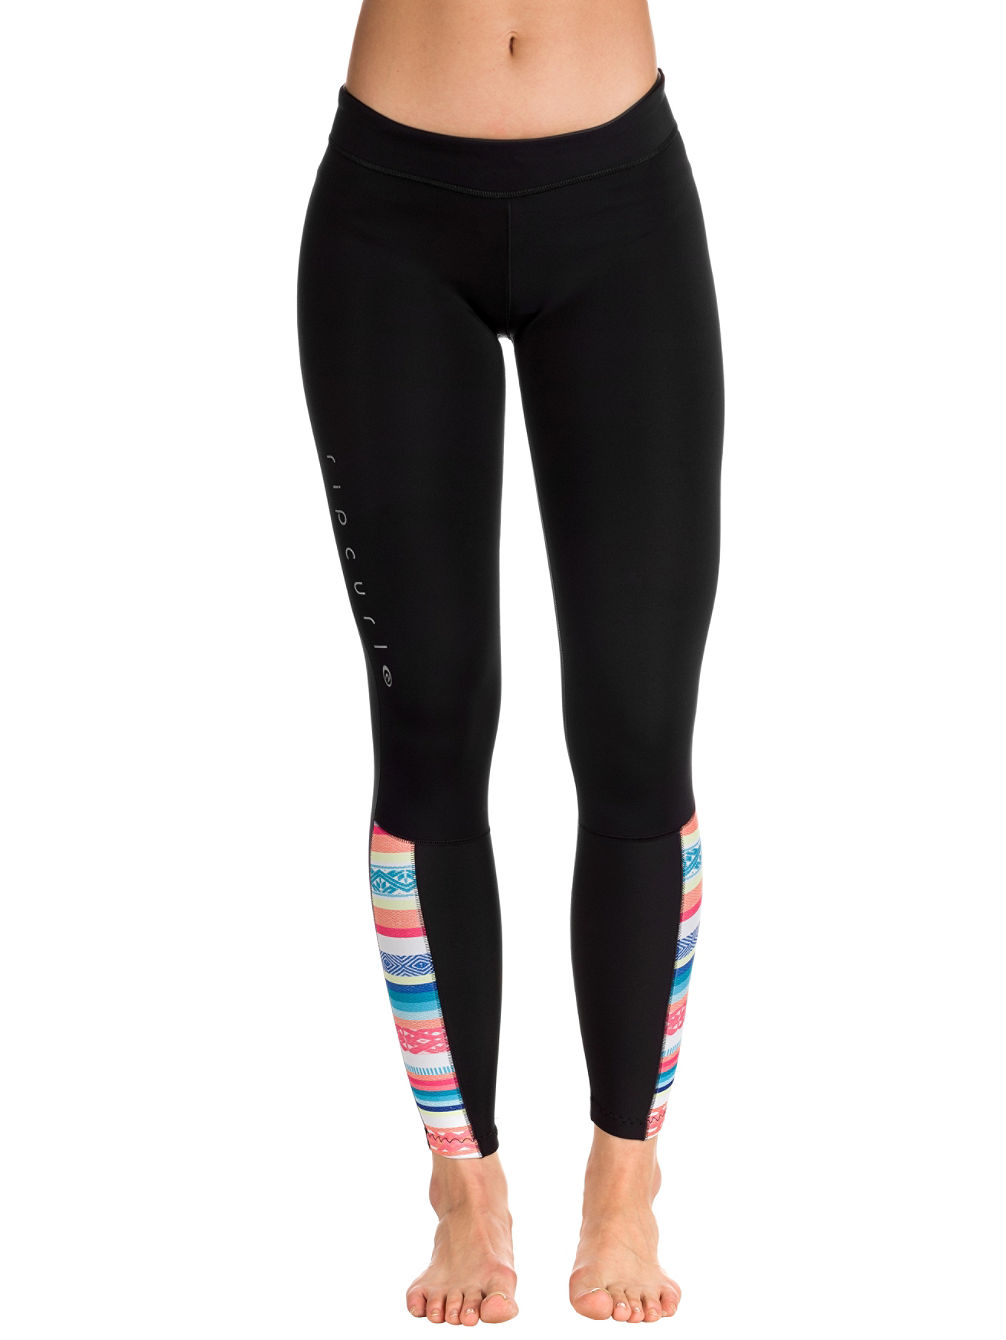 G Bomb Sub Surf Leggings